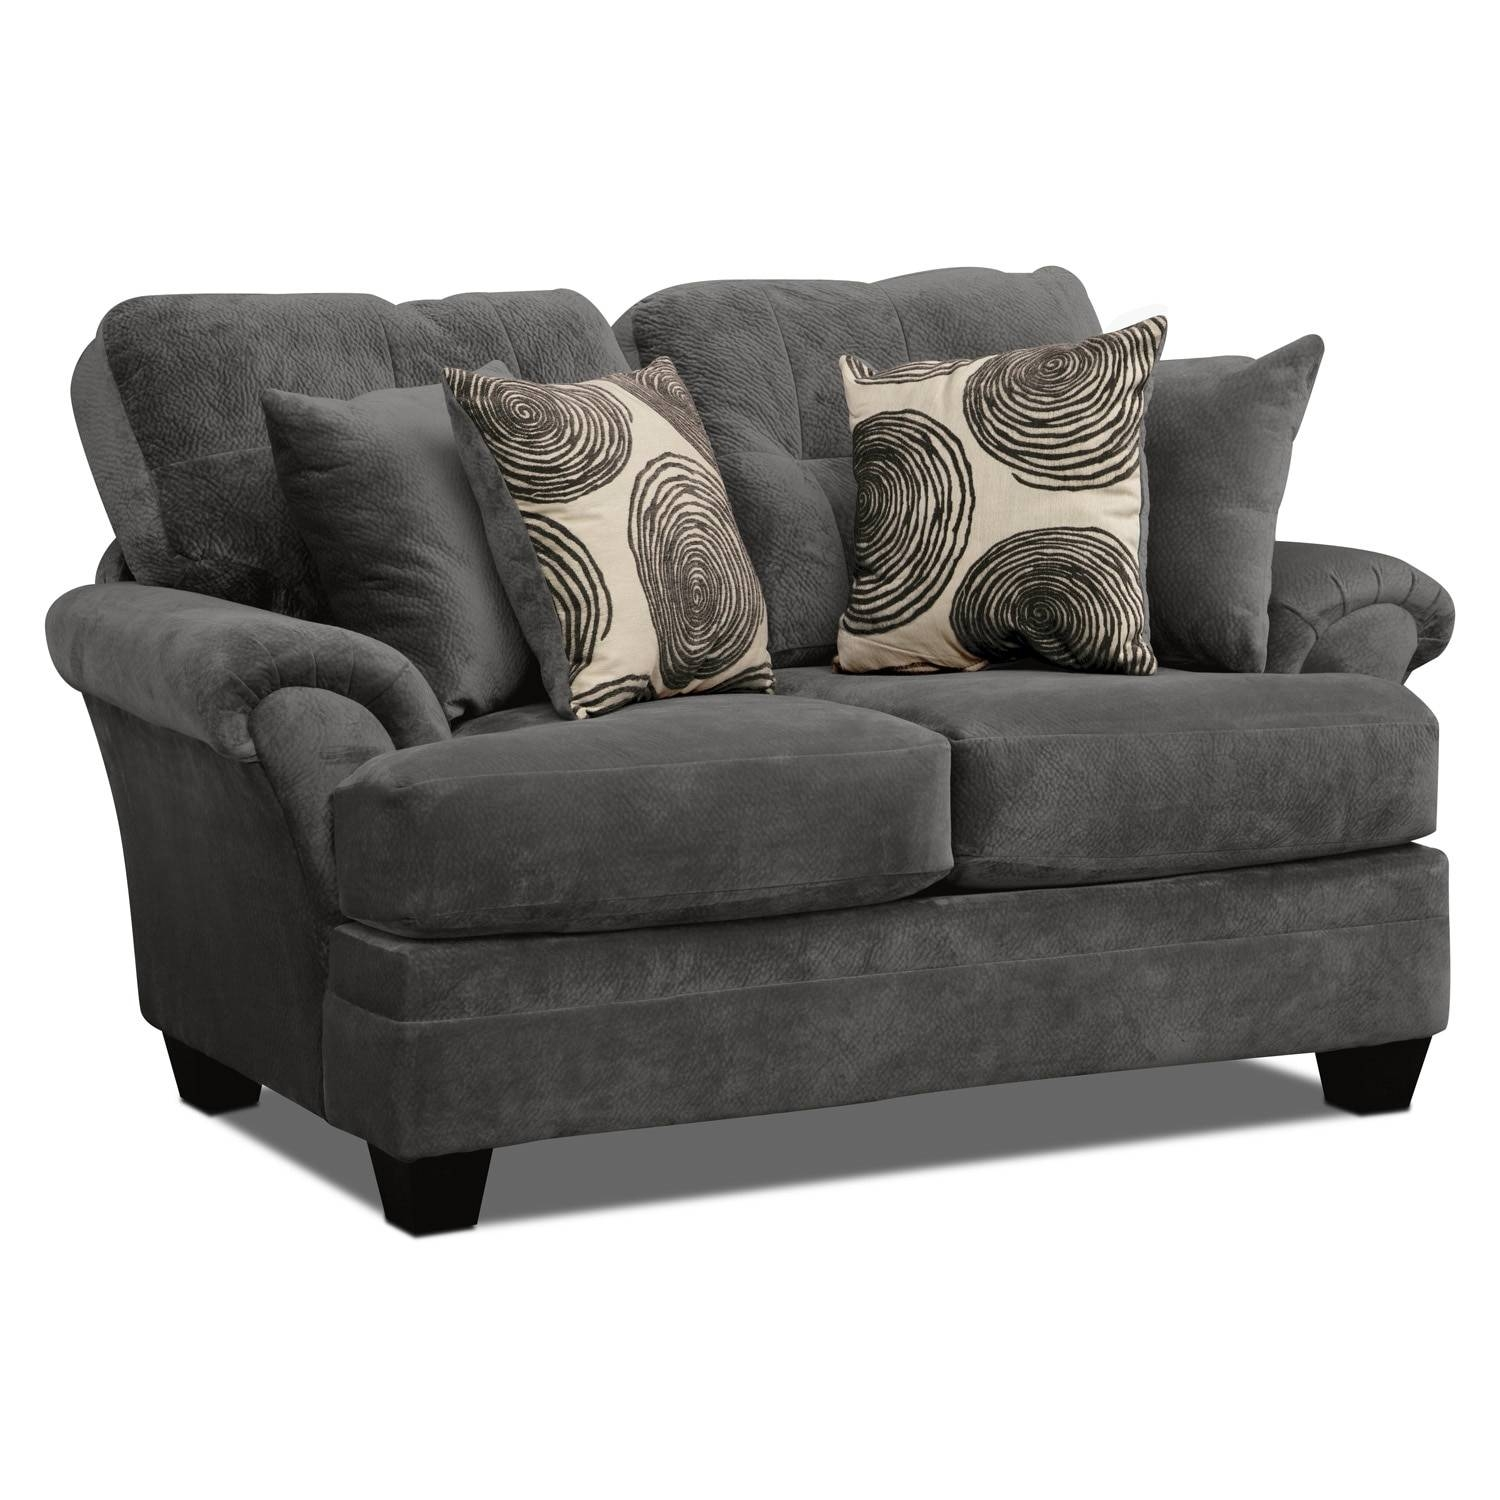 Cordelle Sofa, Loveseat And Swivel Chair Set - Gray | Value City intended for Swivel Sofa Chairs (Image 5 of 30)